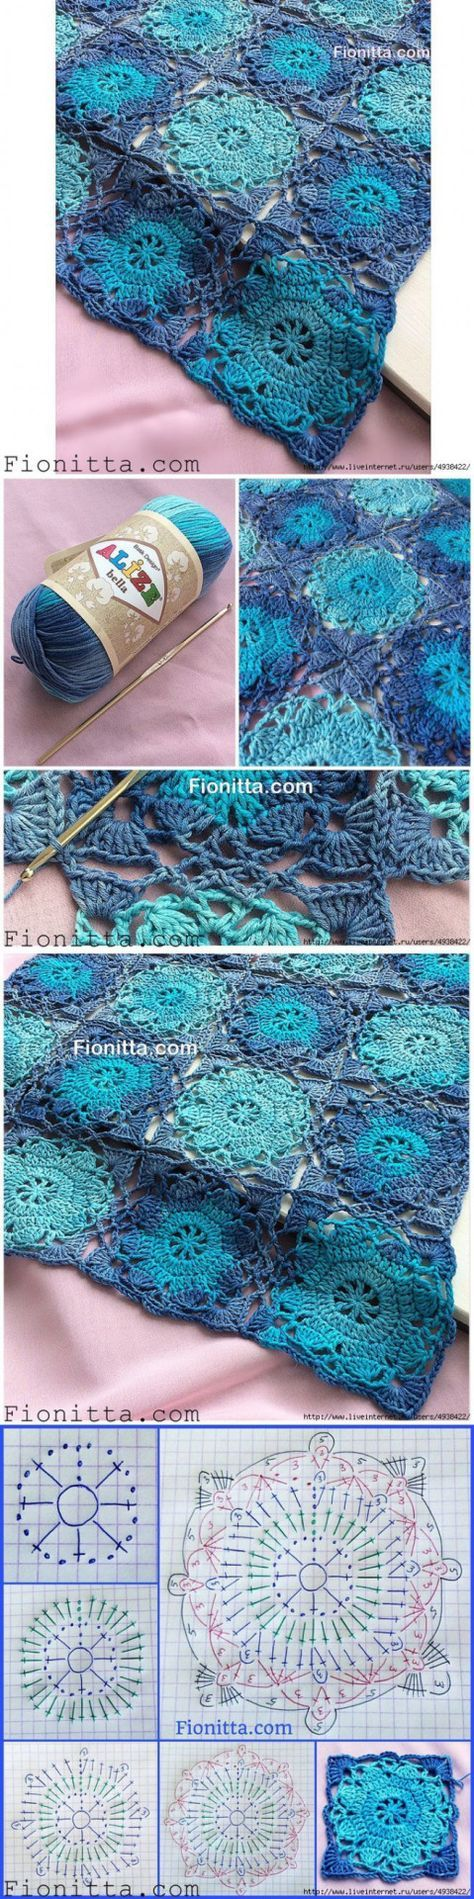 best free patterns for my hook images on pinterest free